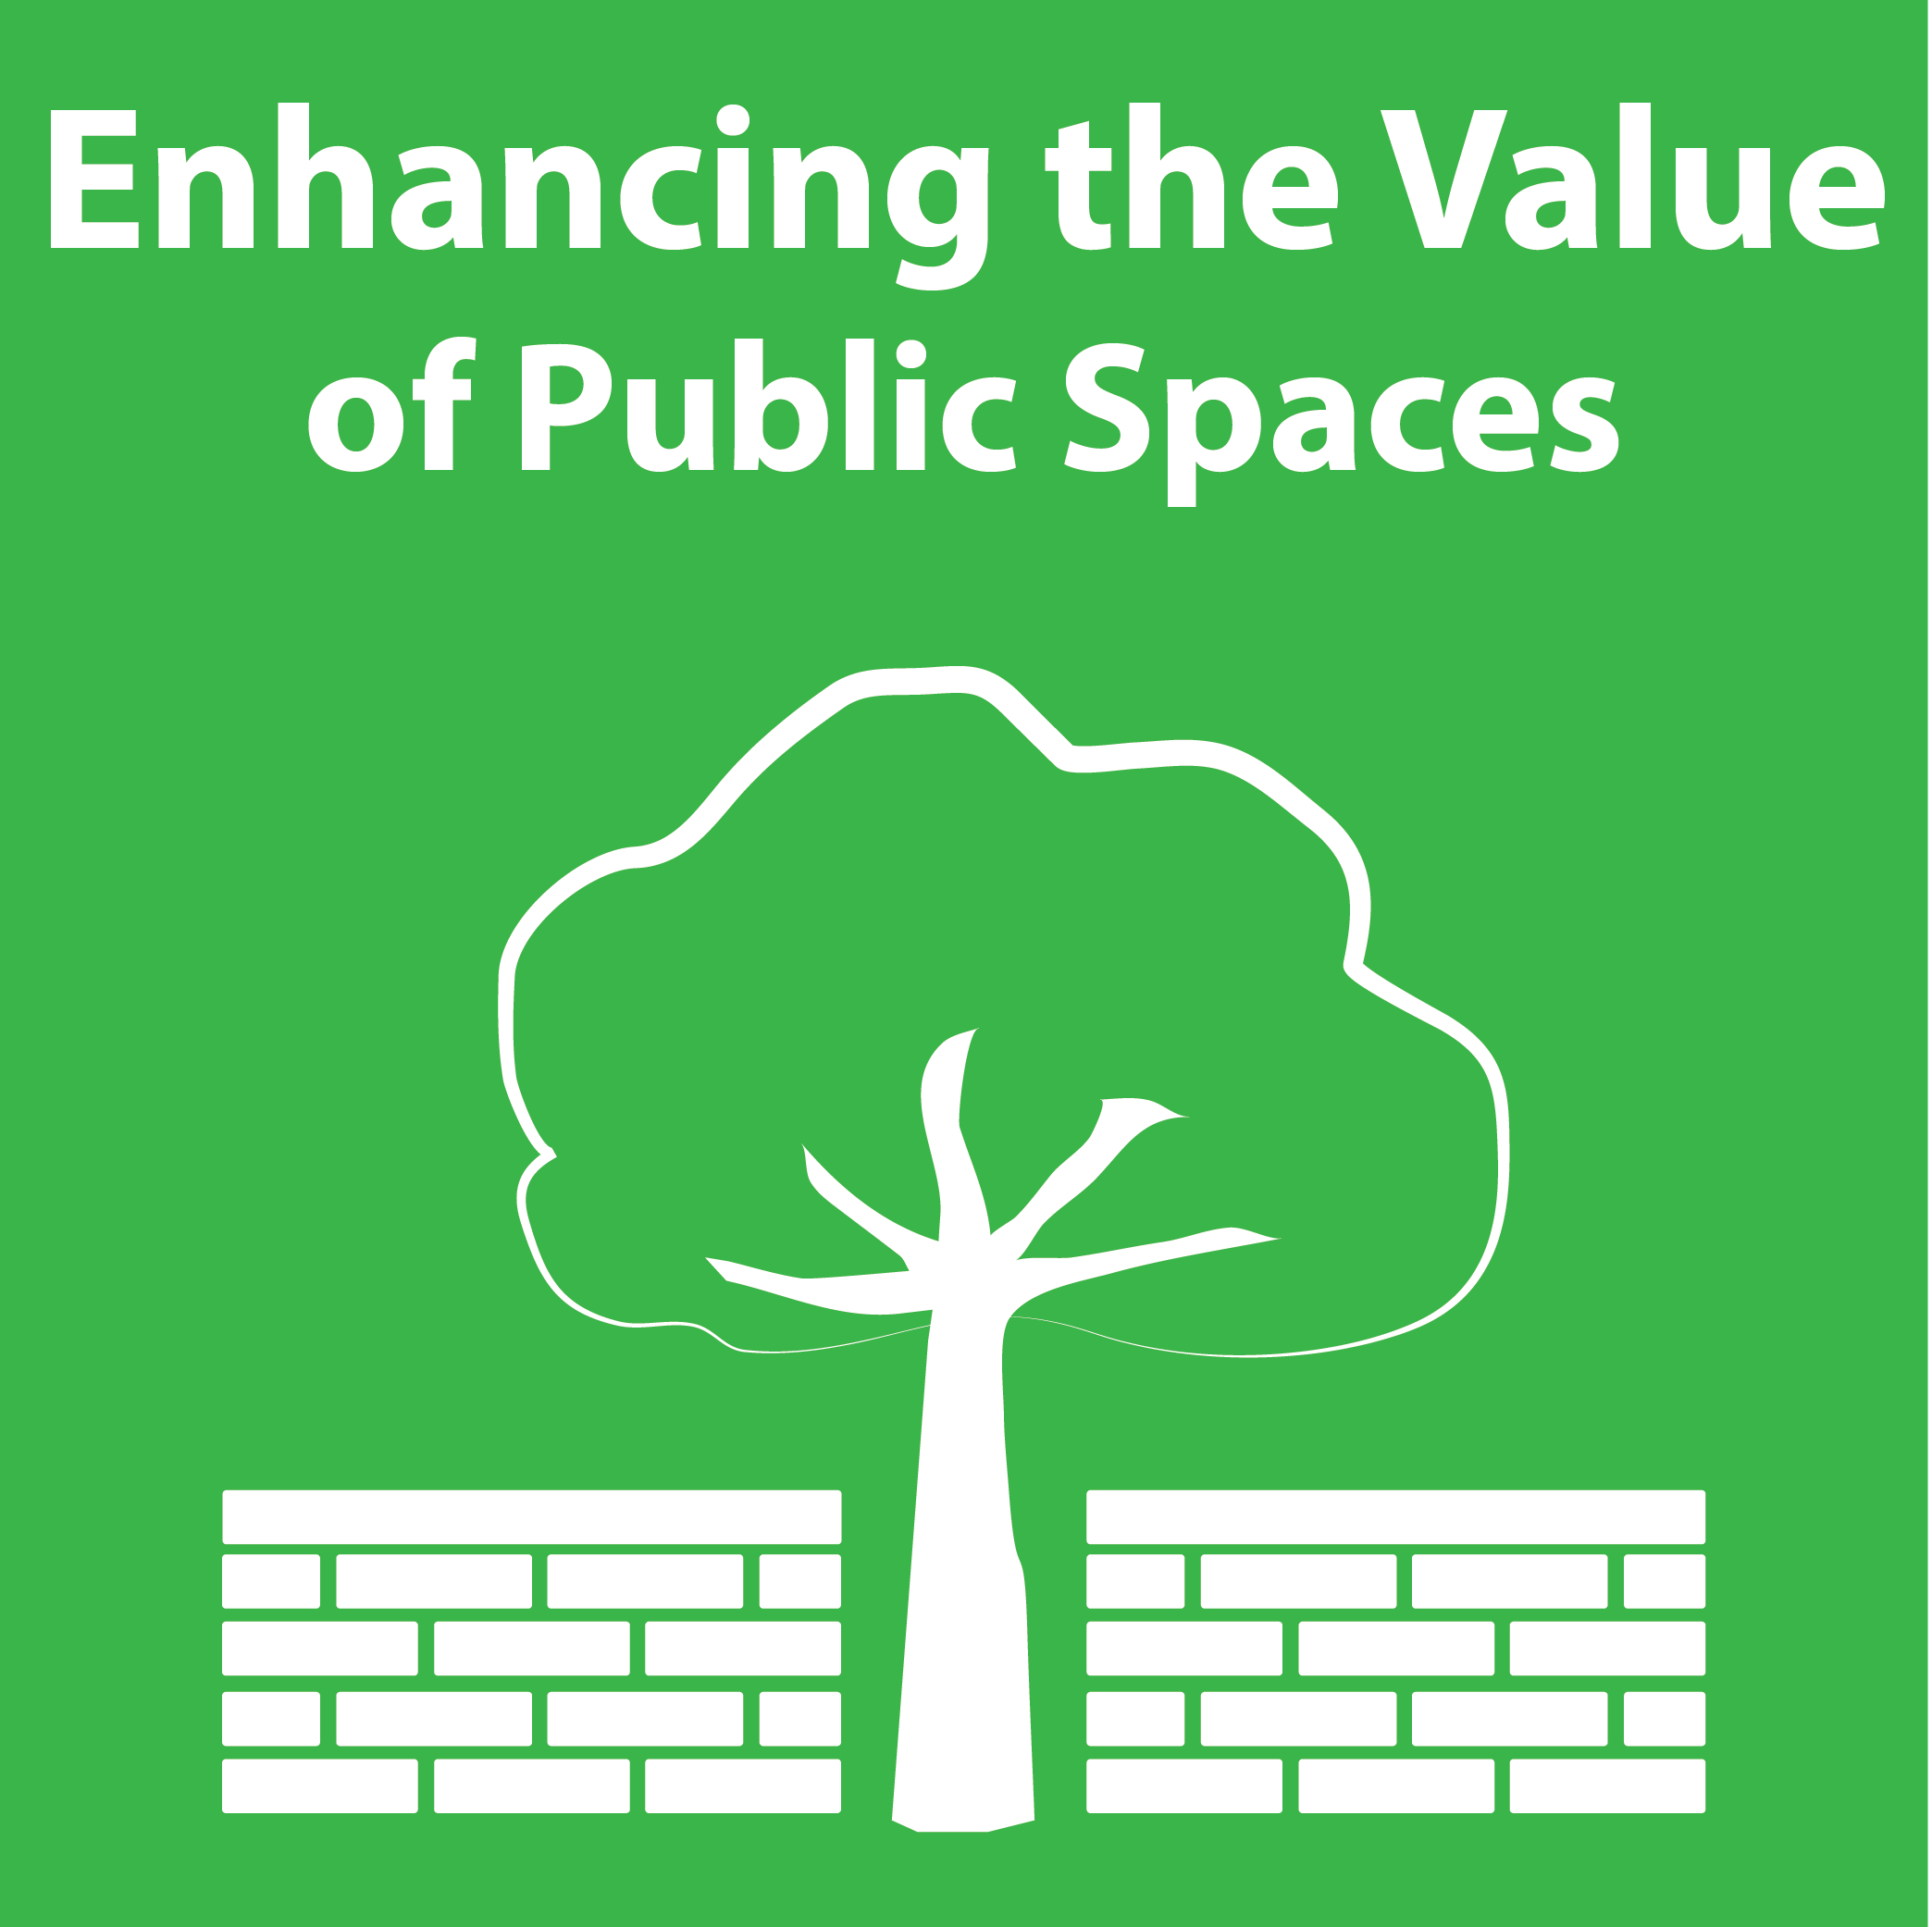 Enhancing the Value of Public Spaces